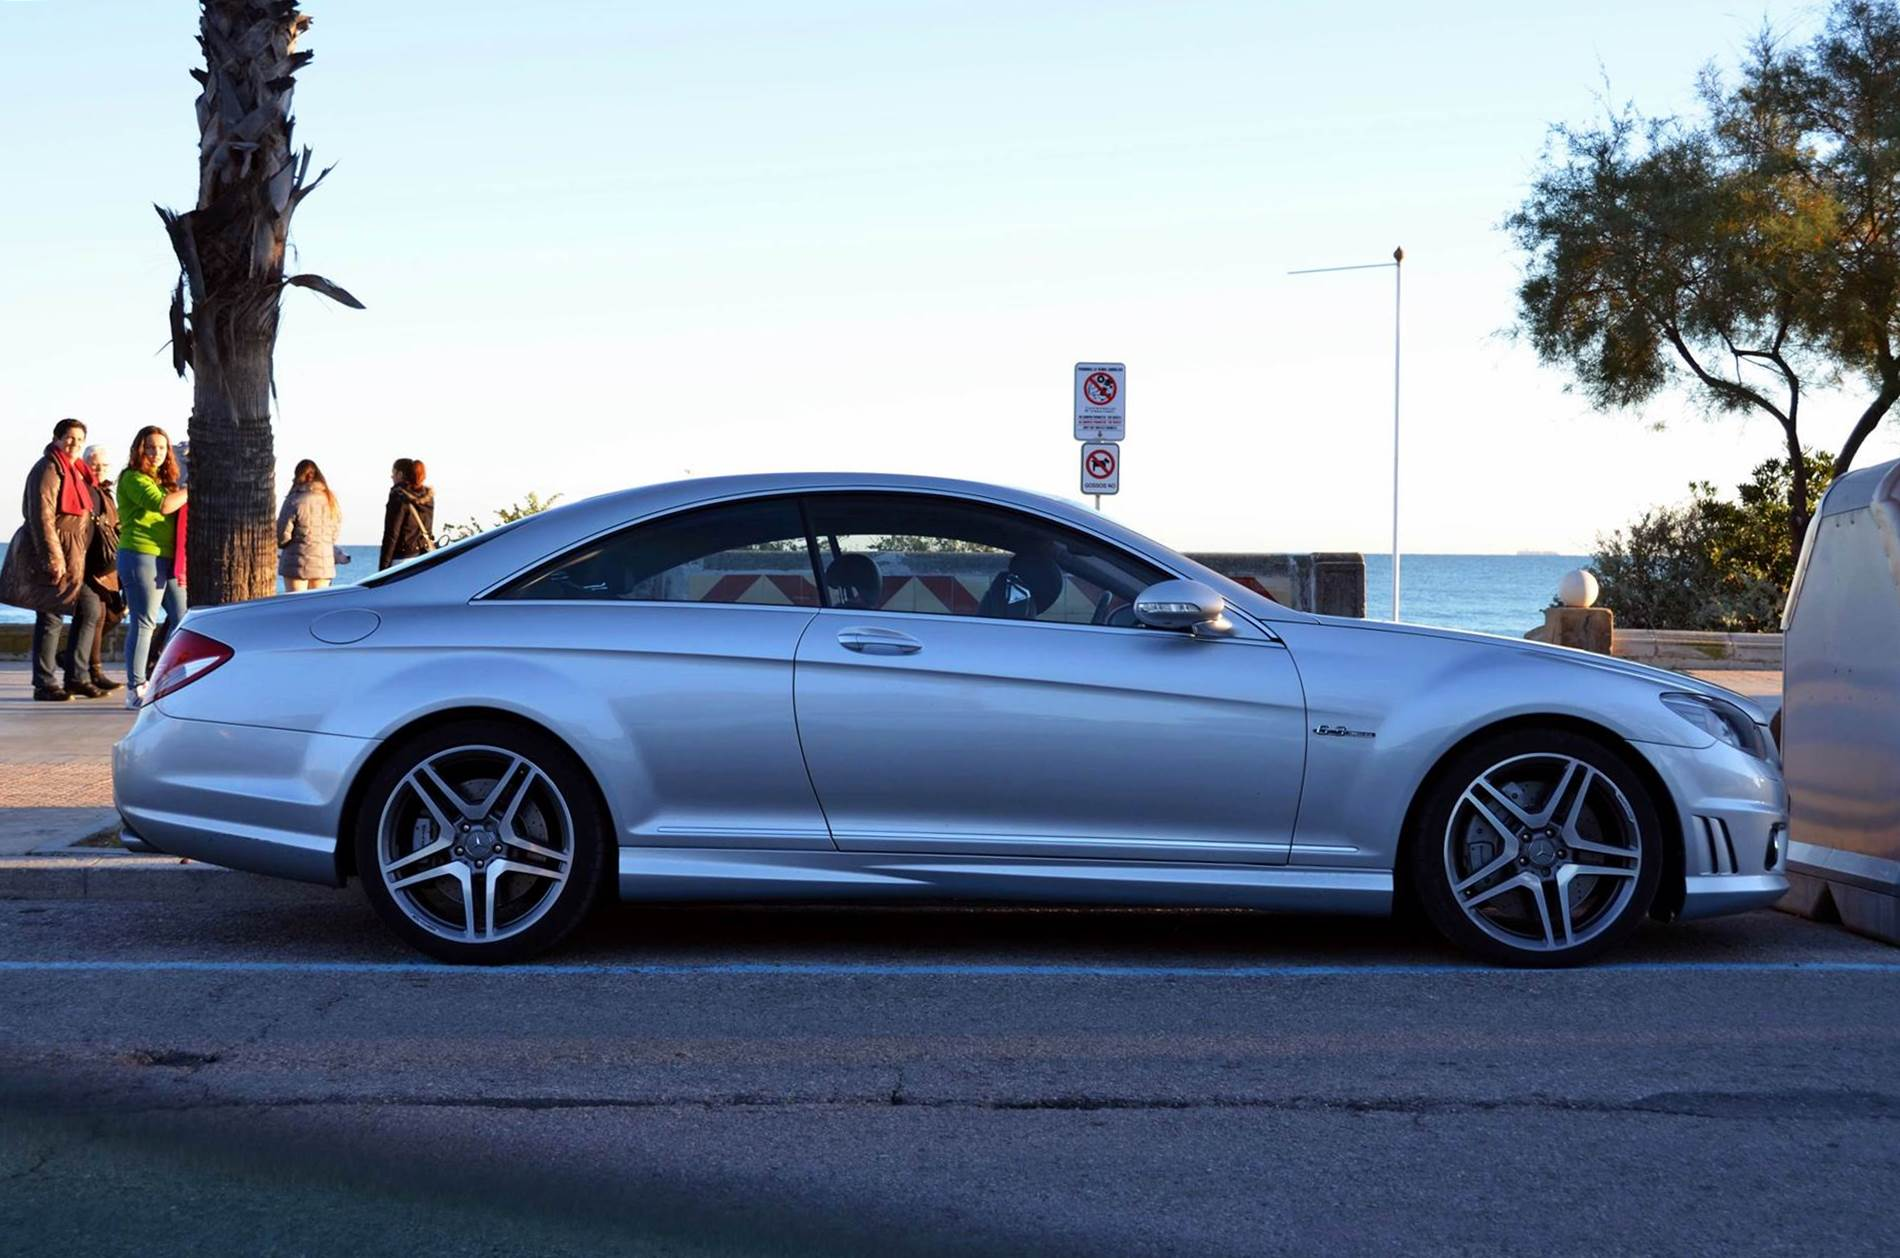 Mercedes benz cl 63 amg c216 supercars all day exotic for Mercedes benz all